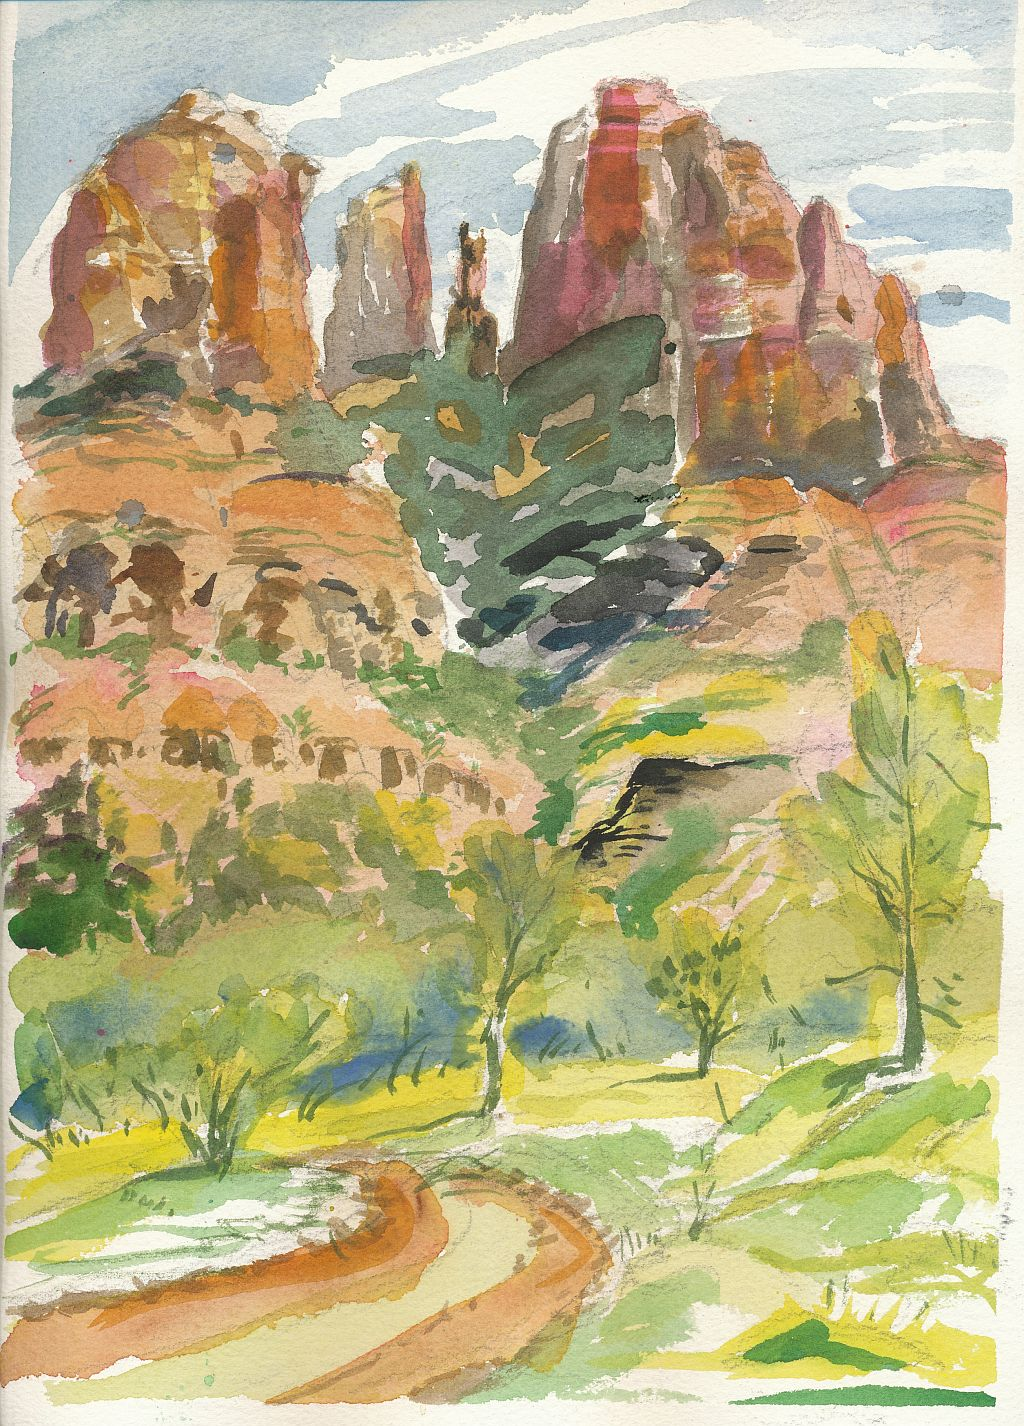 sedona-marks-wc-of-cathedral-rocks.jpg